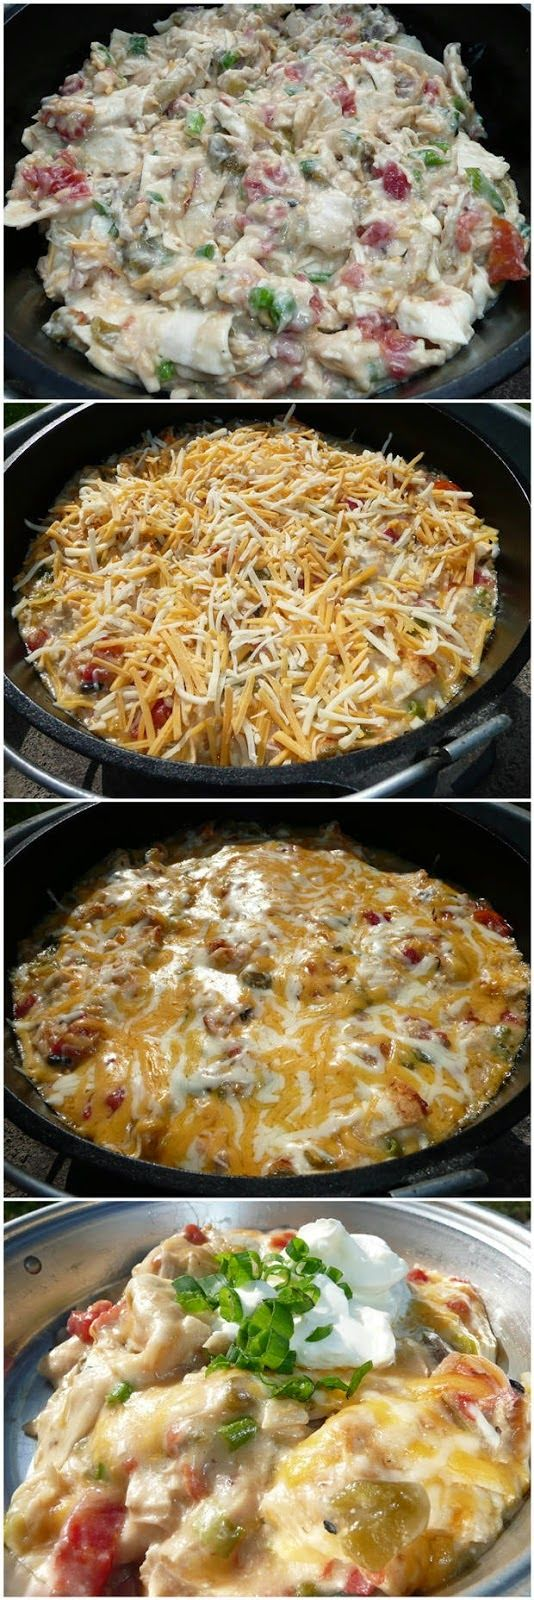 Ingredients   2 1/2 cups cubed cooked chicken  2 cups shredded Cheddar cheese, divided  1 10 3/4 oz. can cream of mushroom soup  1 10 3/4 ...